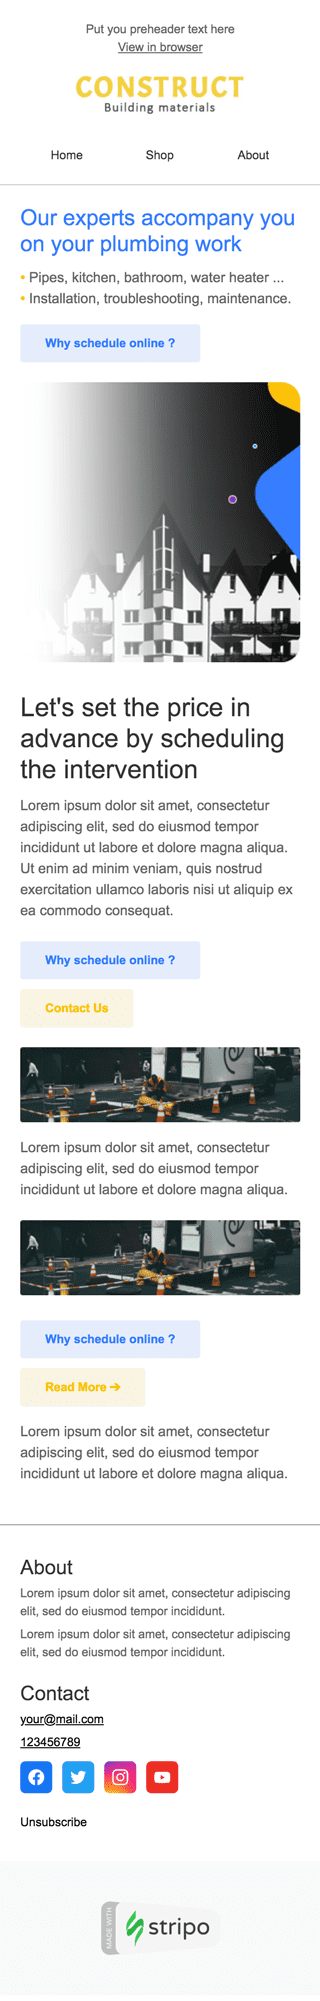 Product Update Email Template «New Opportunities» for Construction industry mobile view